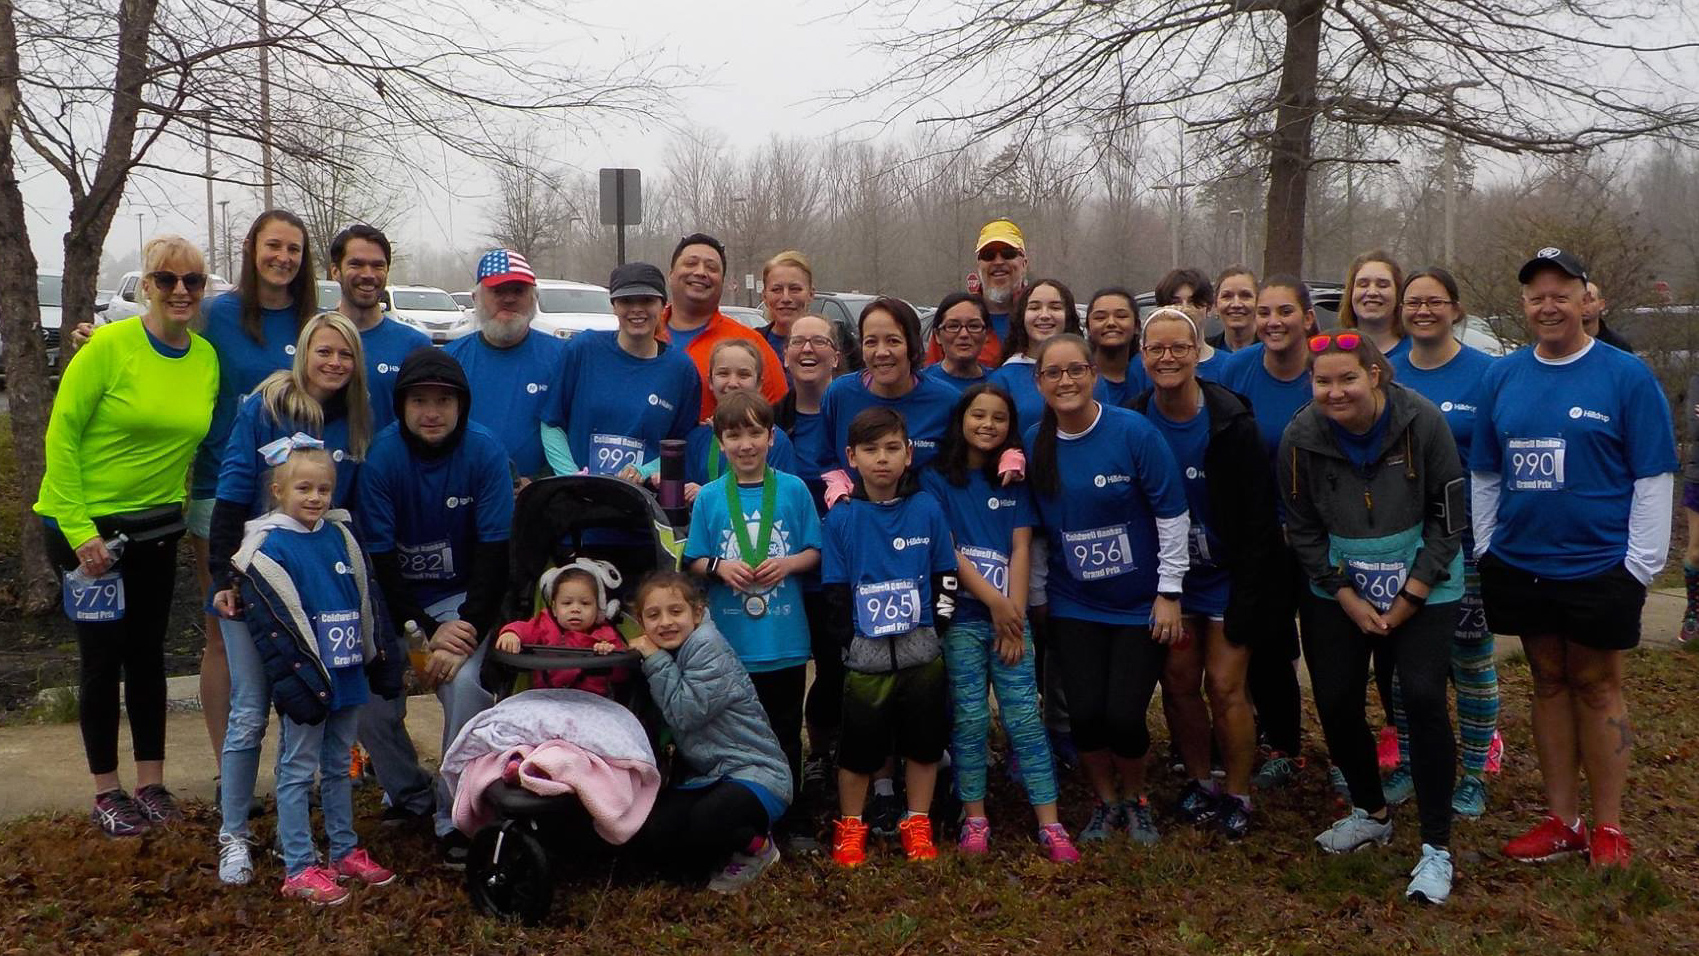 Group photo of Hilldrup Stafford employees at the Stafford 5K